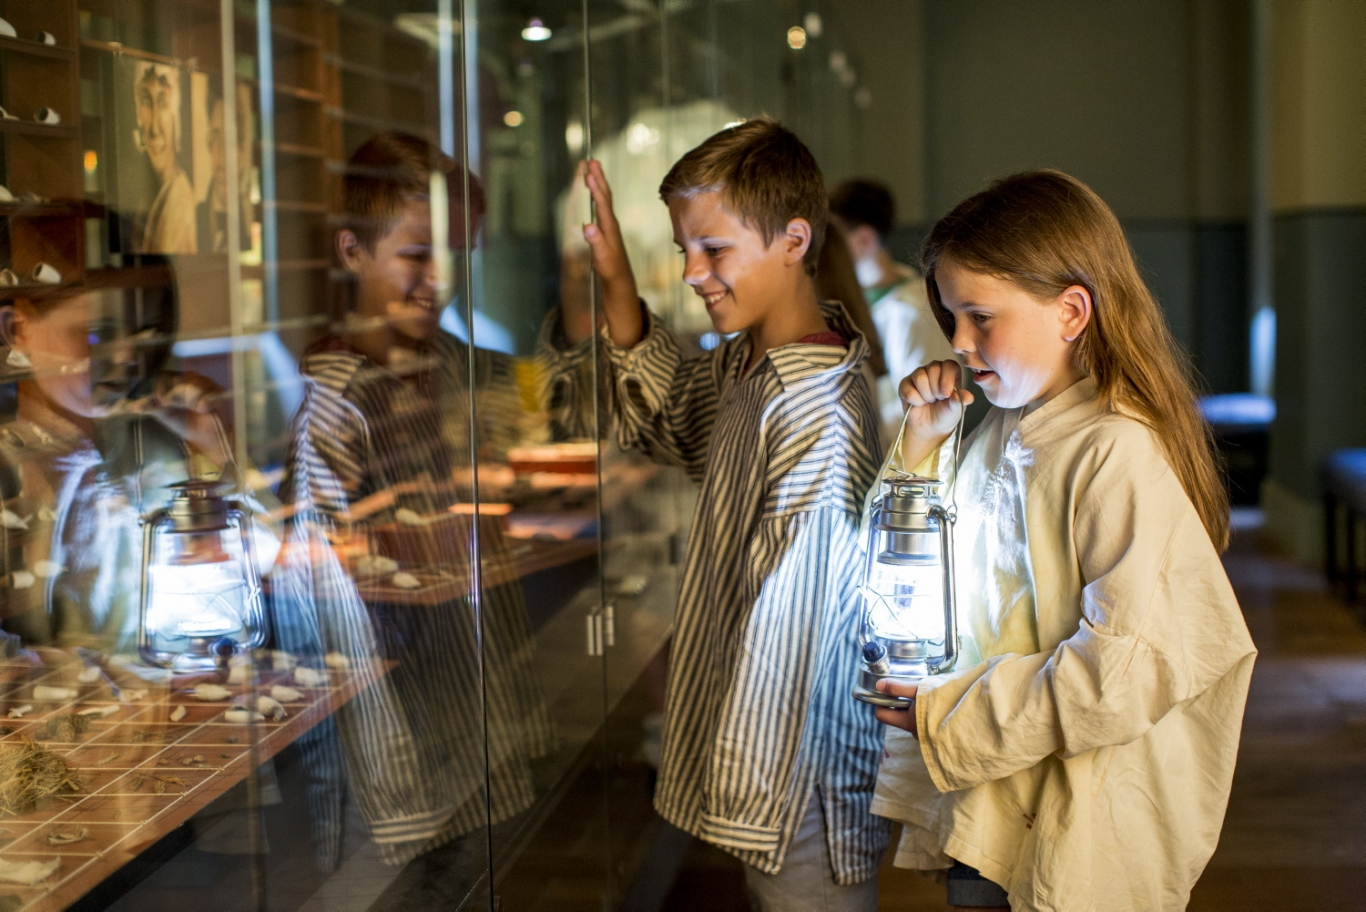 Children in convict garb look at a display at the Hyde Park Barracks Museums